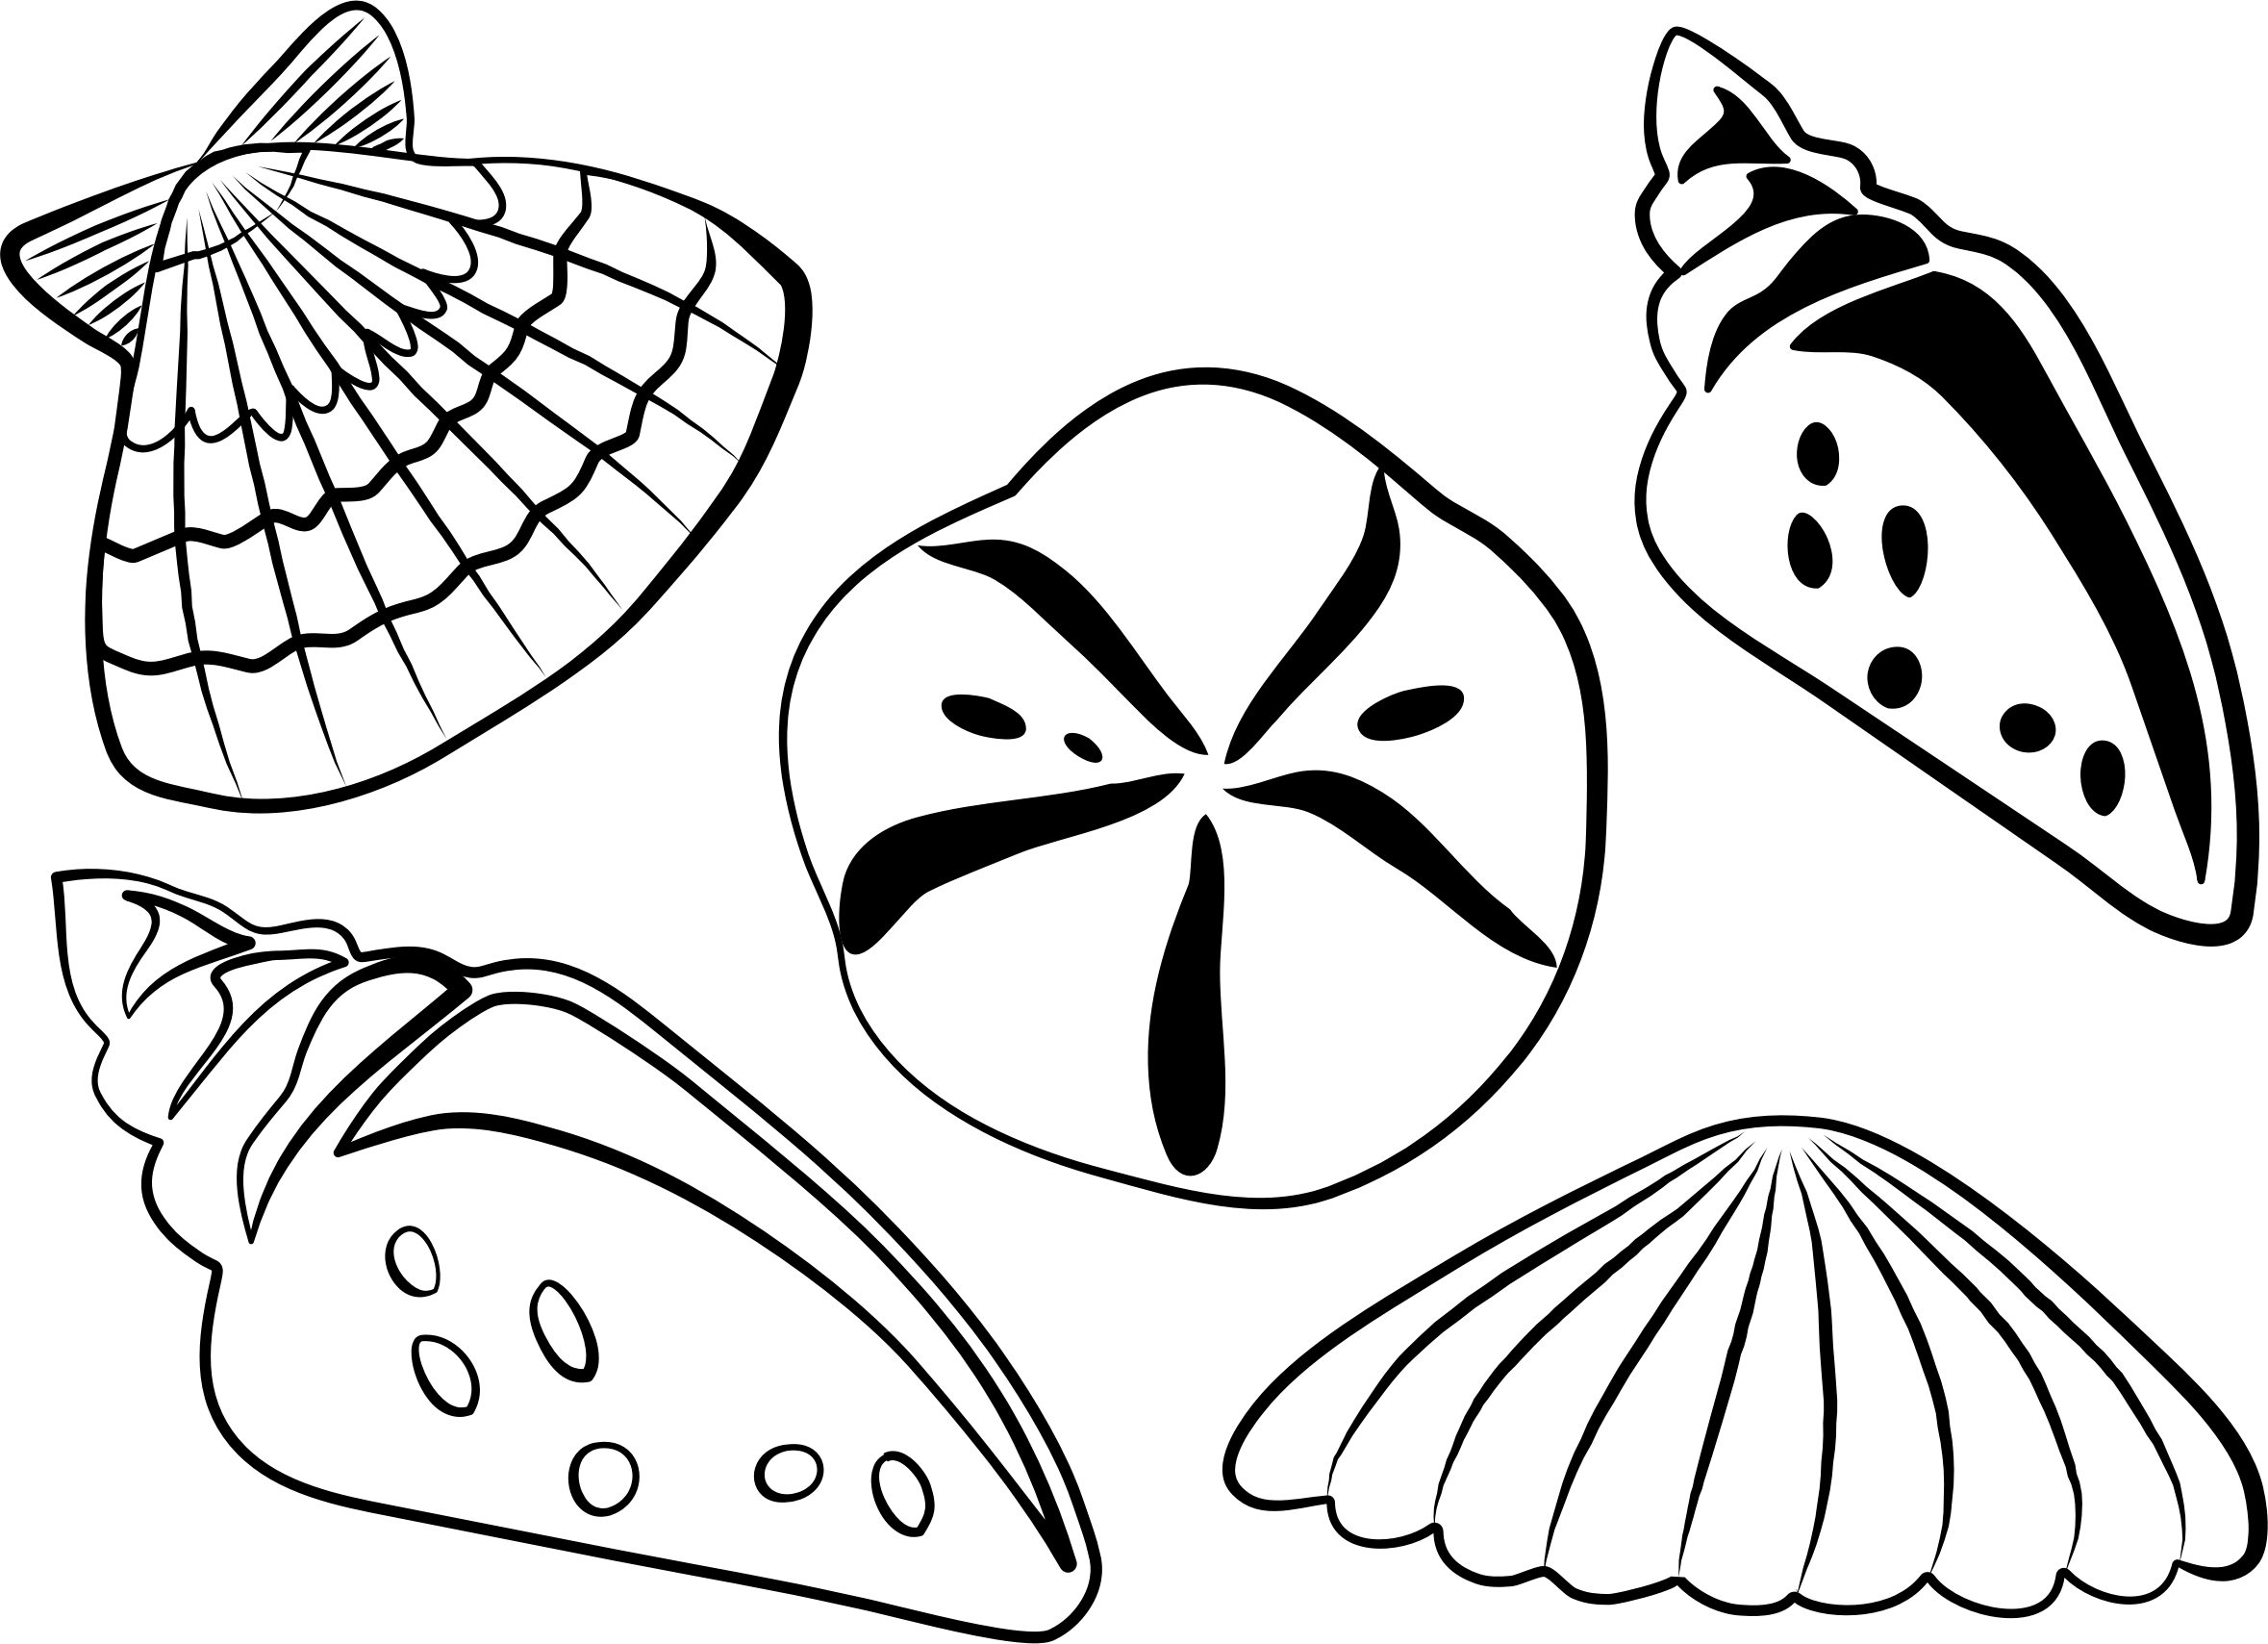 Shell clipart lineart. Sea shells icons png